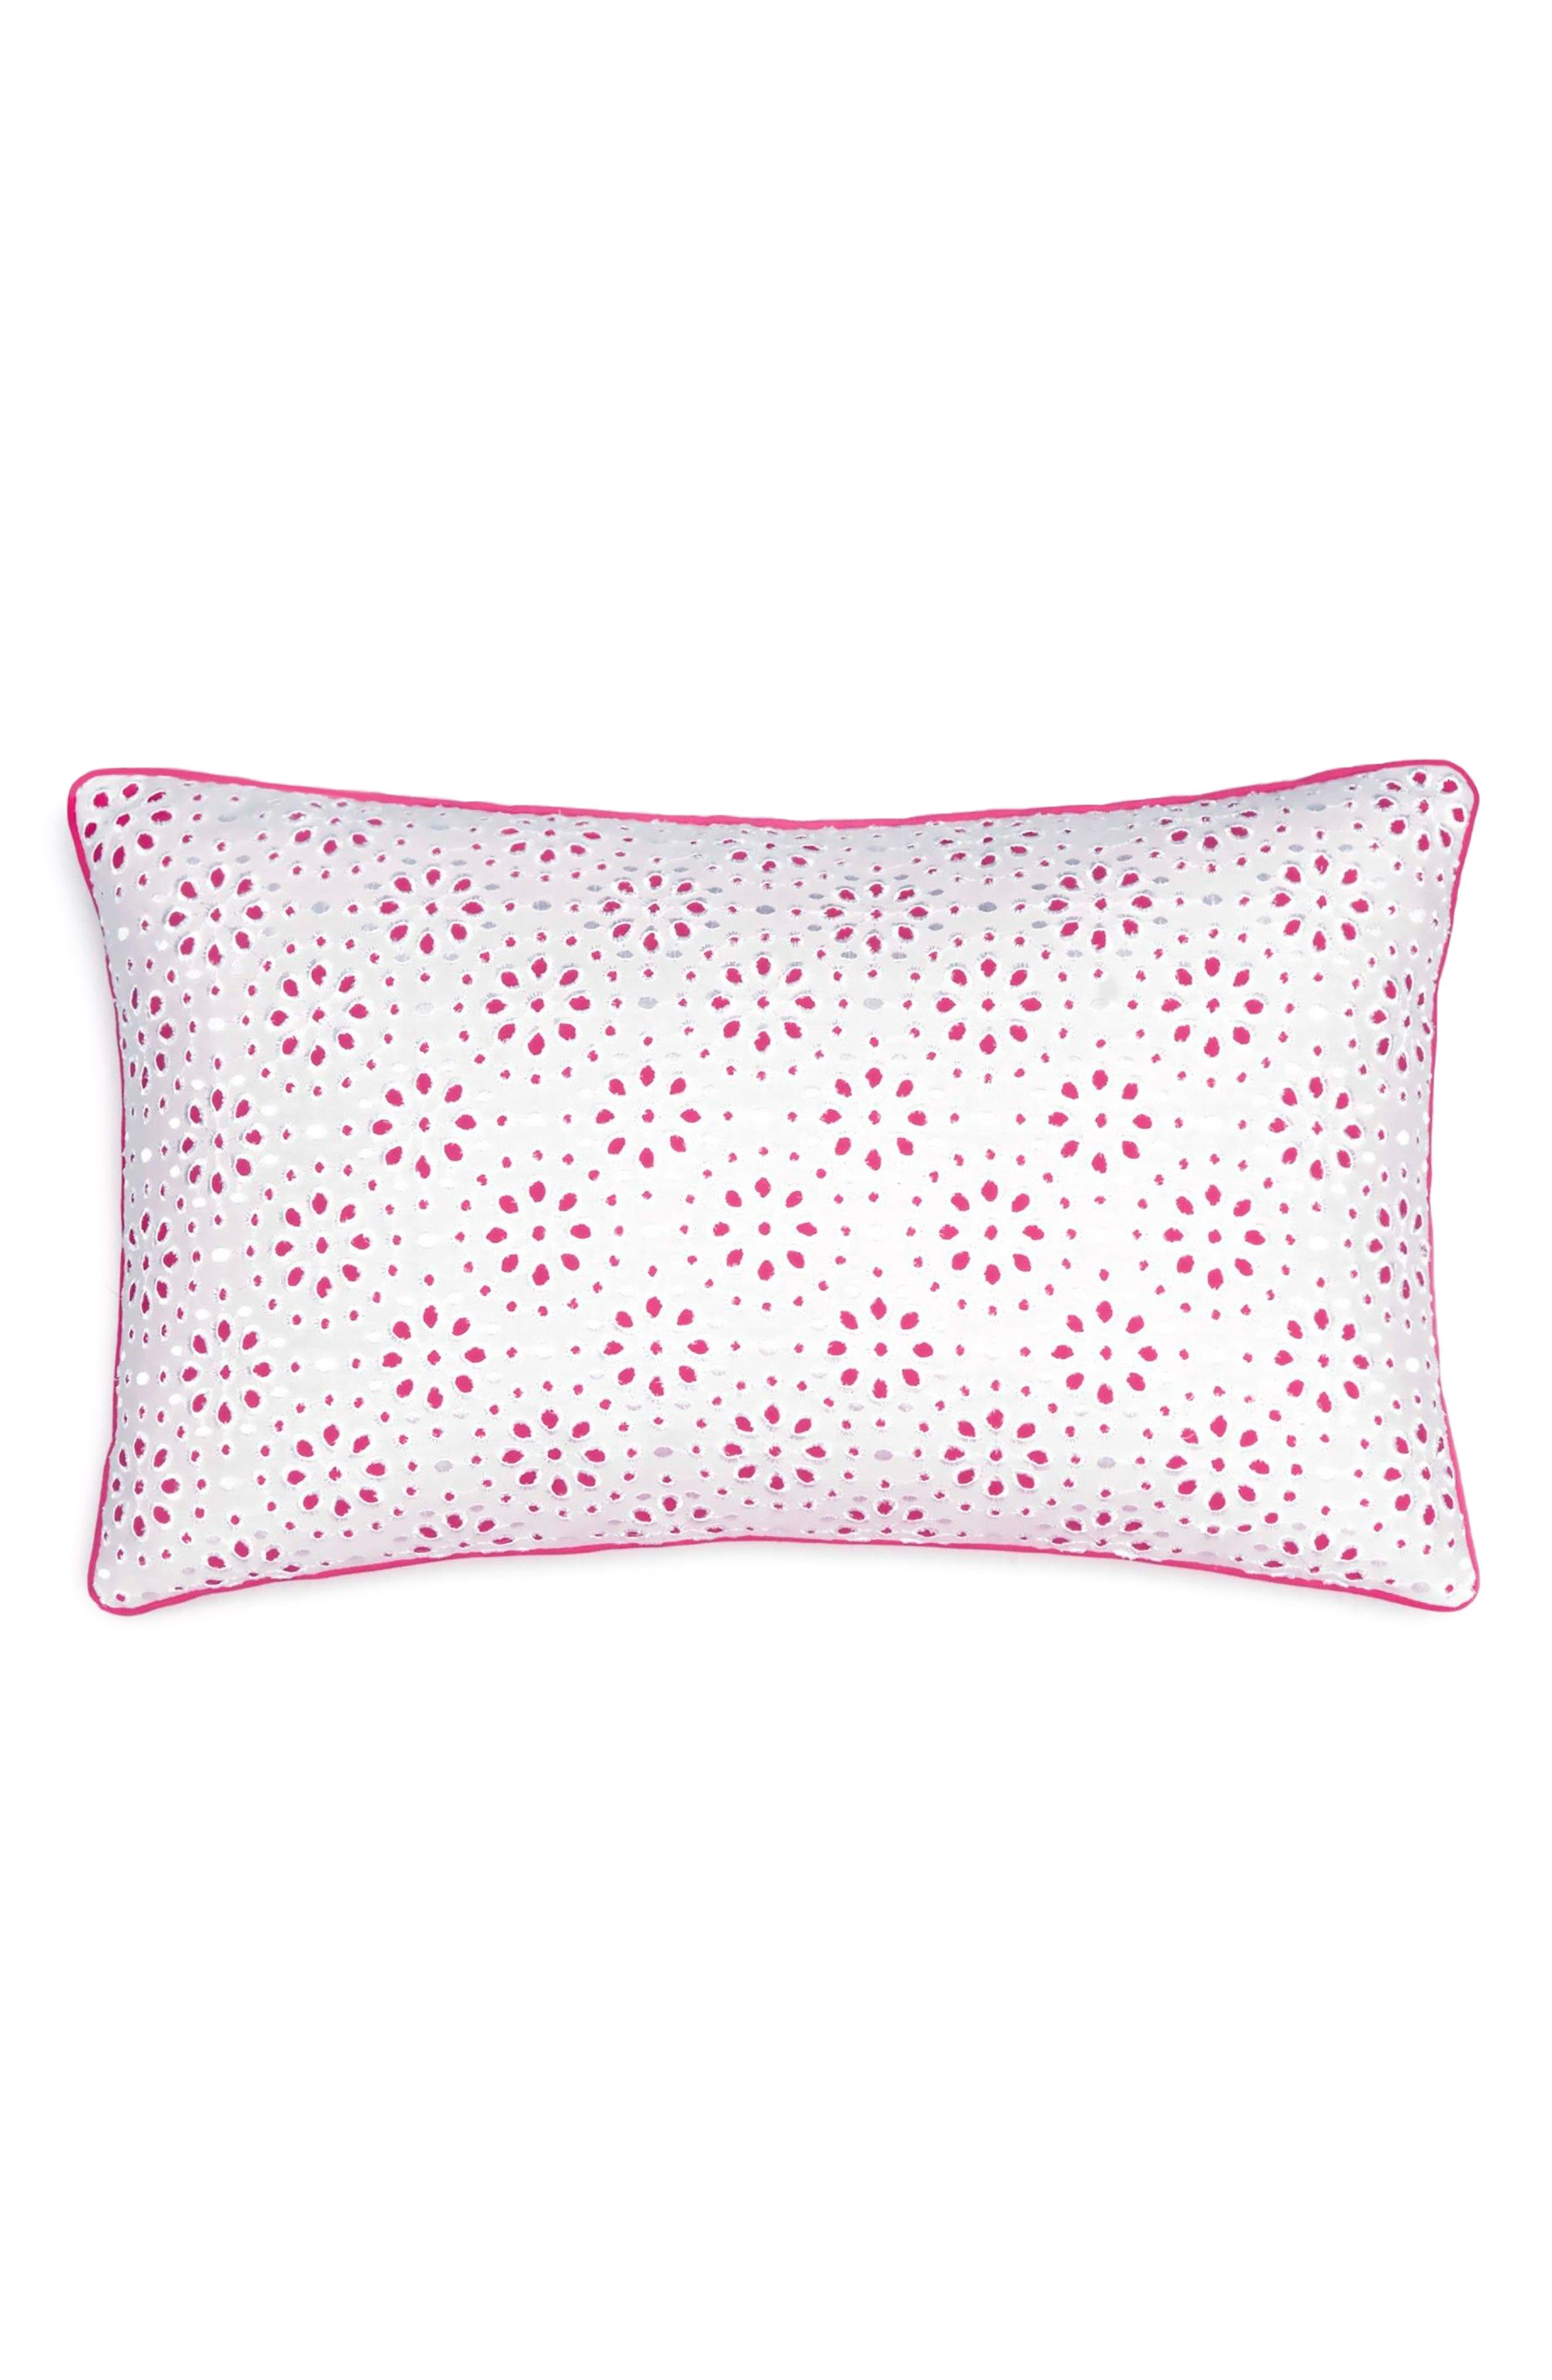 Floral Eyelet Pillow,                         Main,                         color, Pink